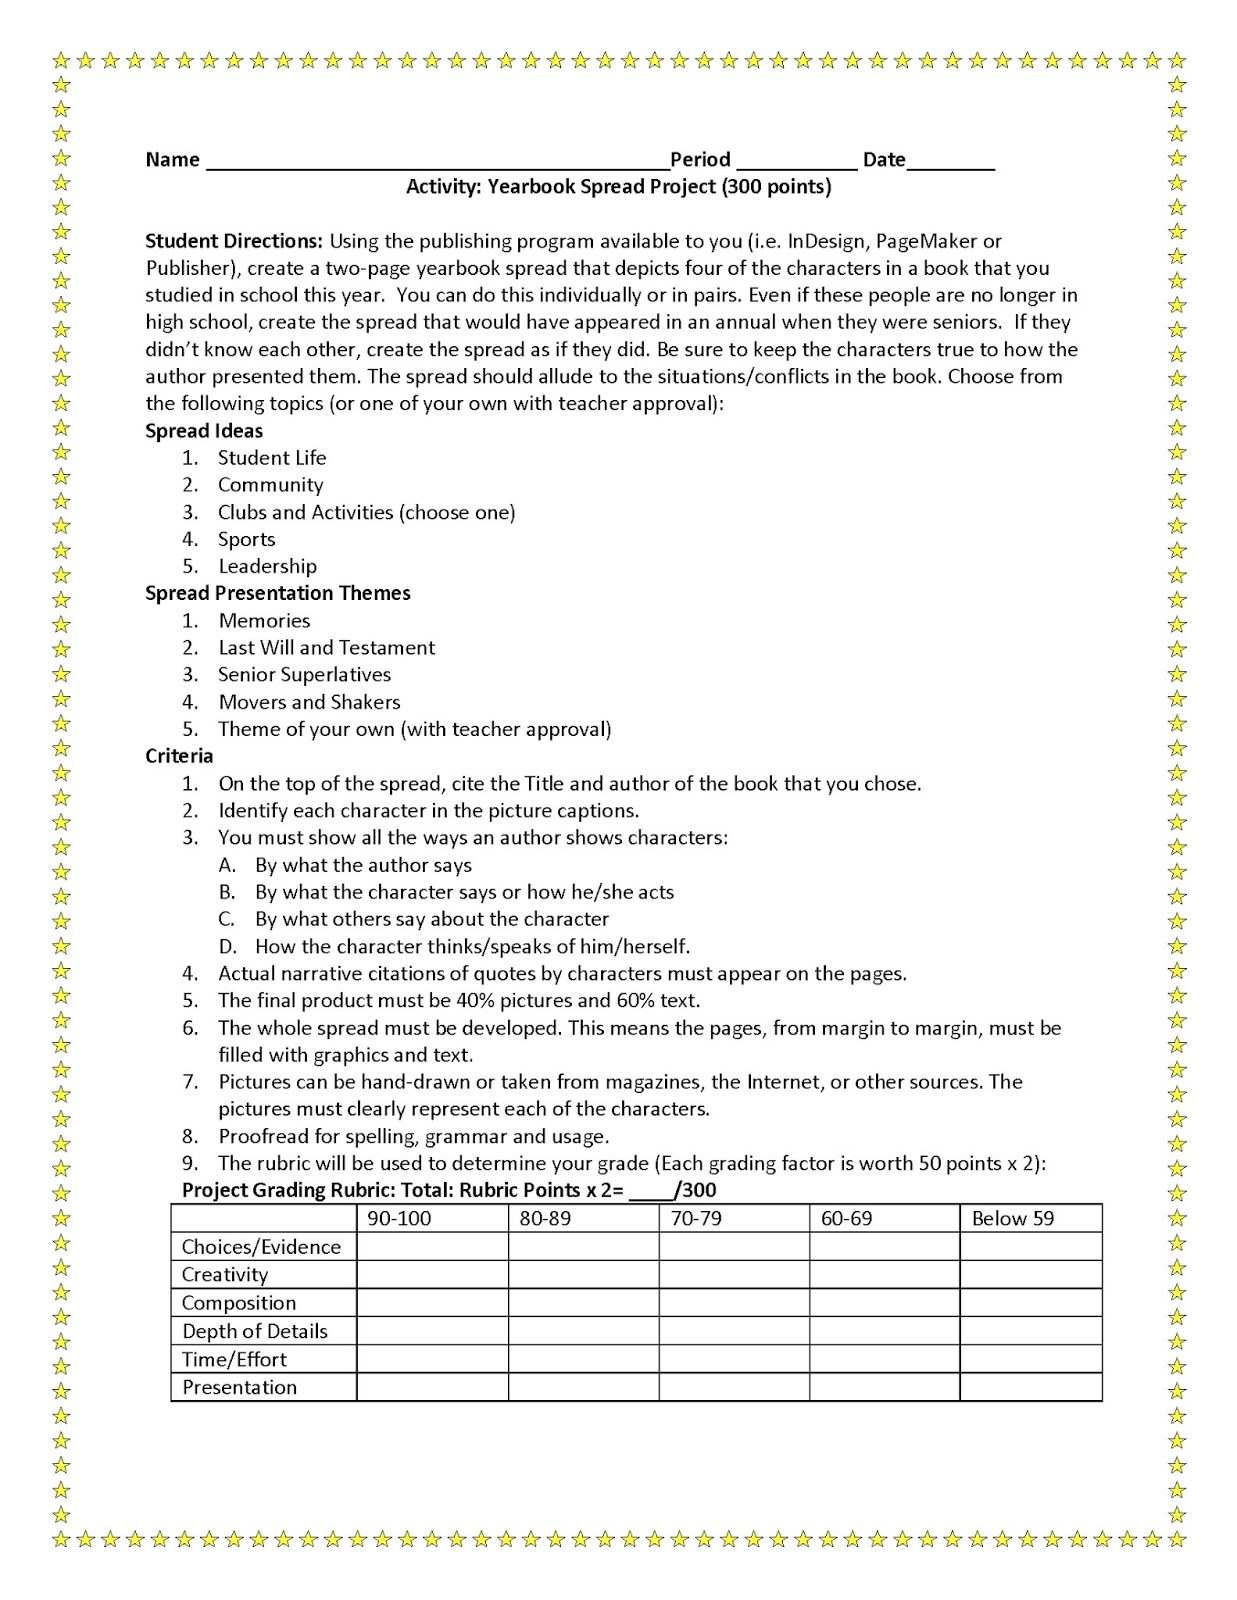 journalism yearbook worksheet for students - Google Search ...